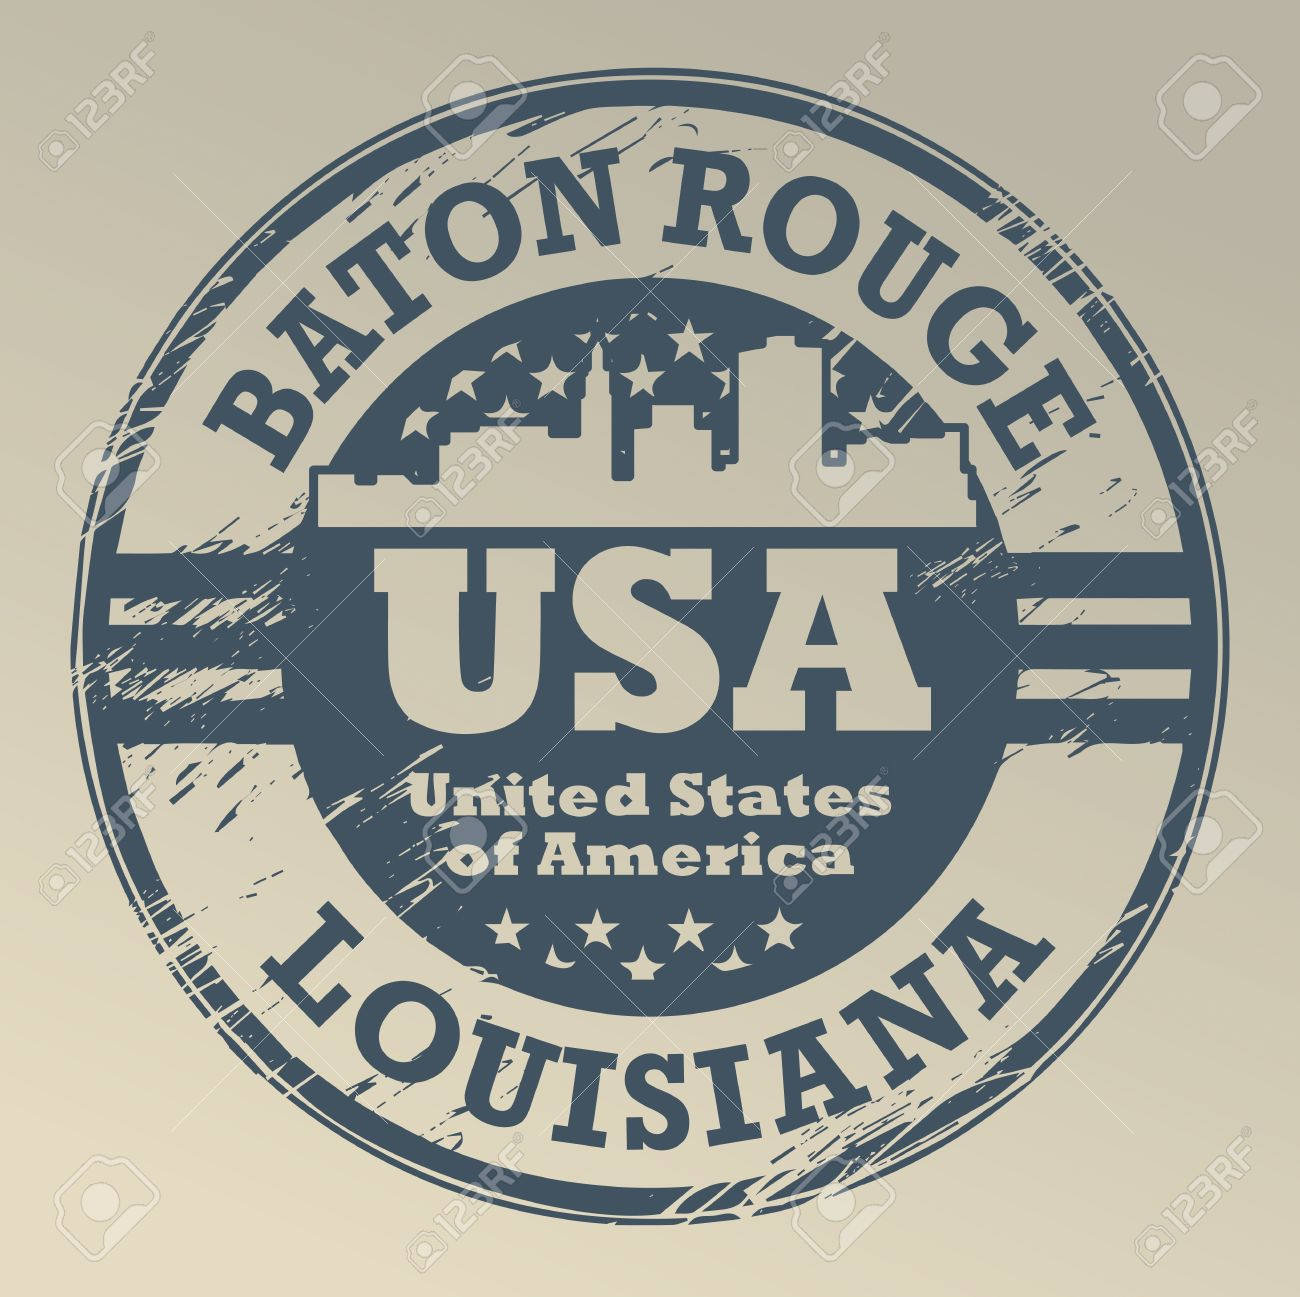 216 Baton Rouge Stock Illustrations, Cliparts And Royalty Free.